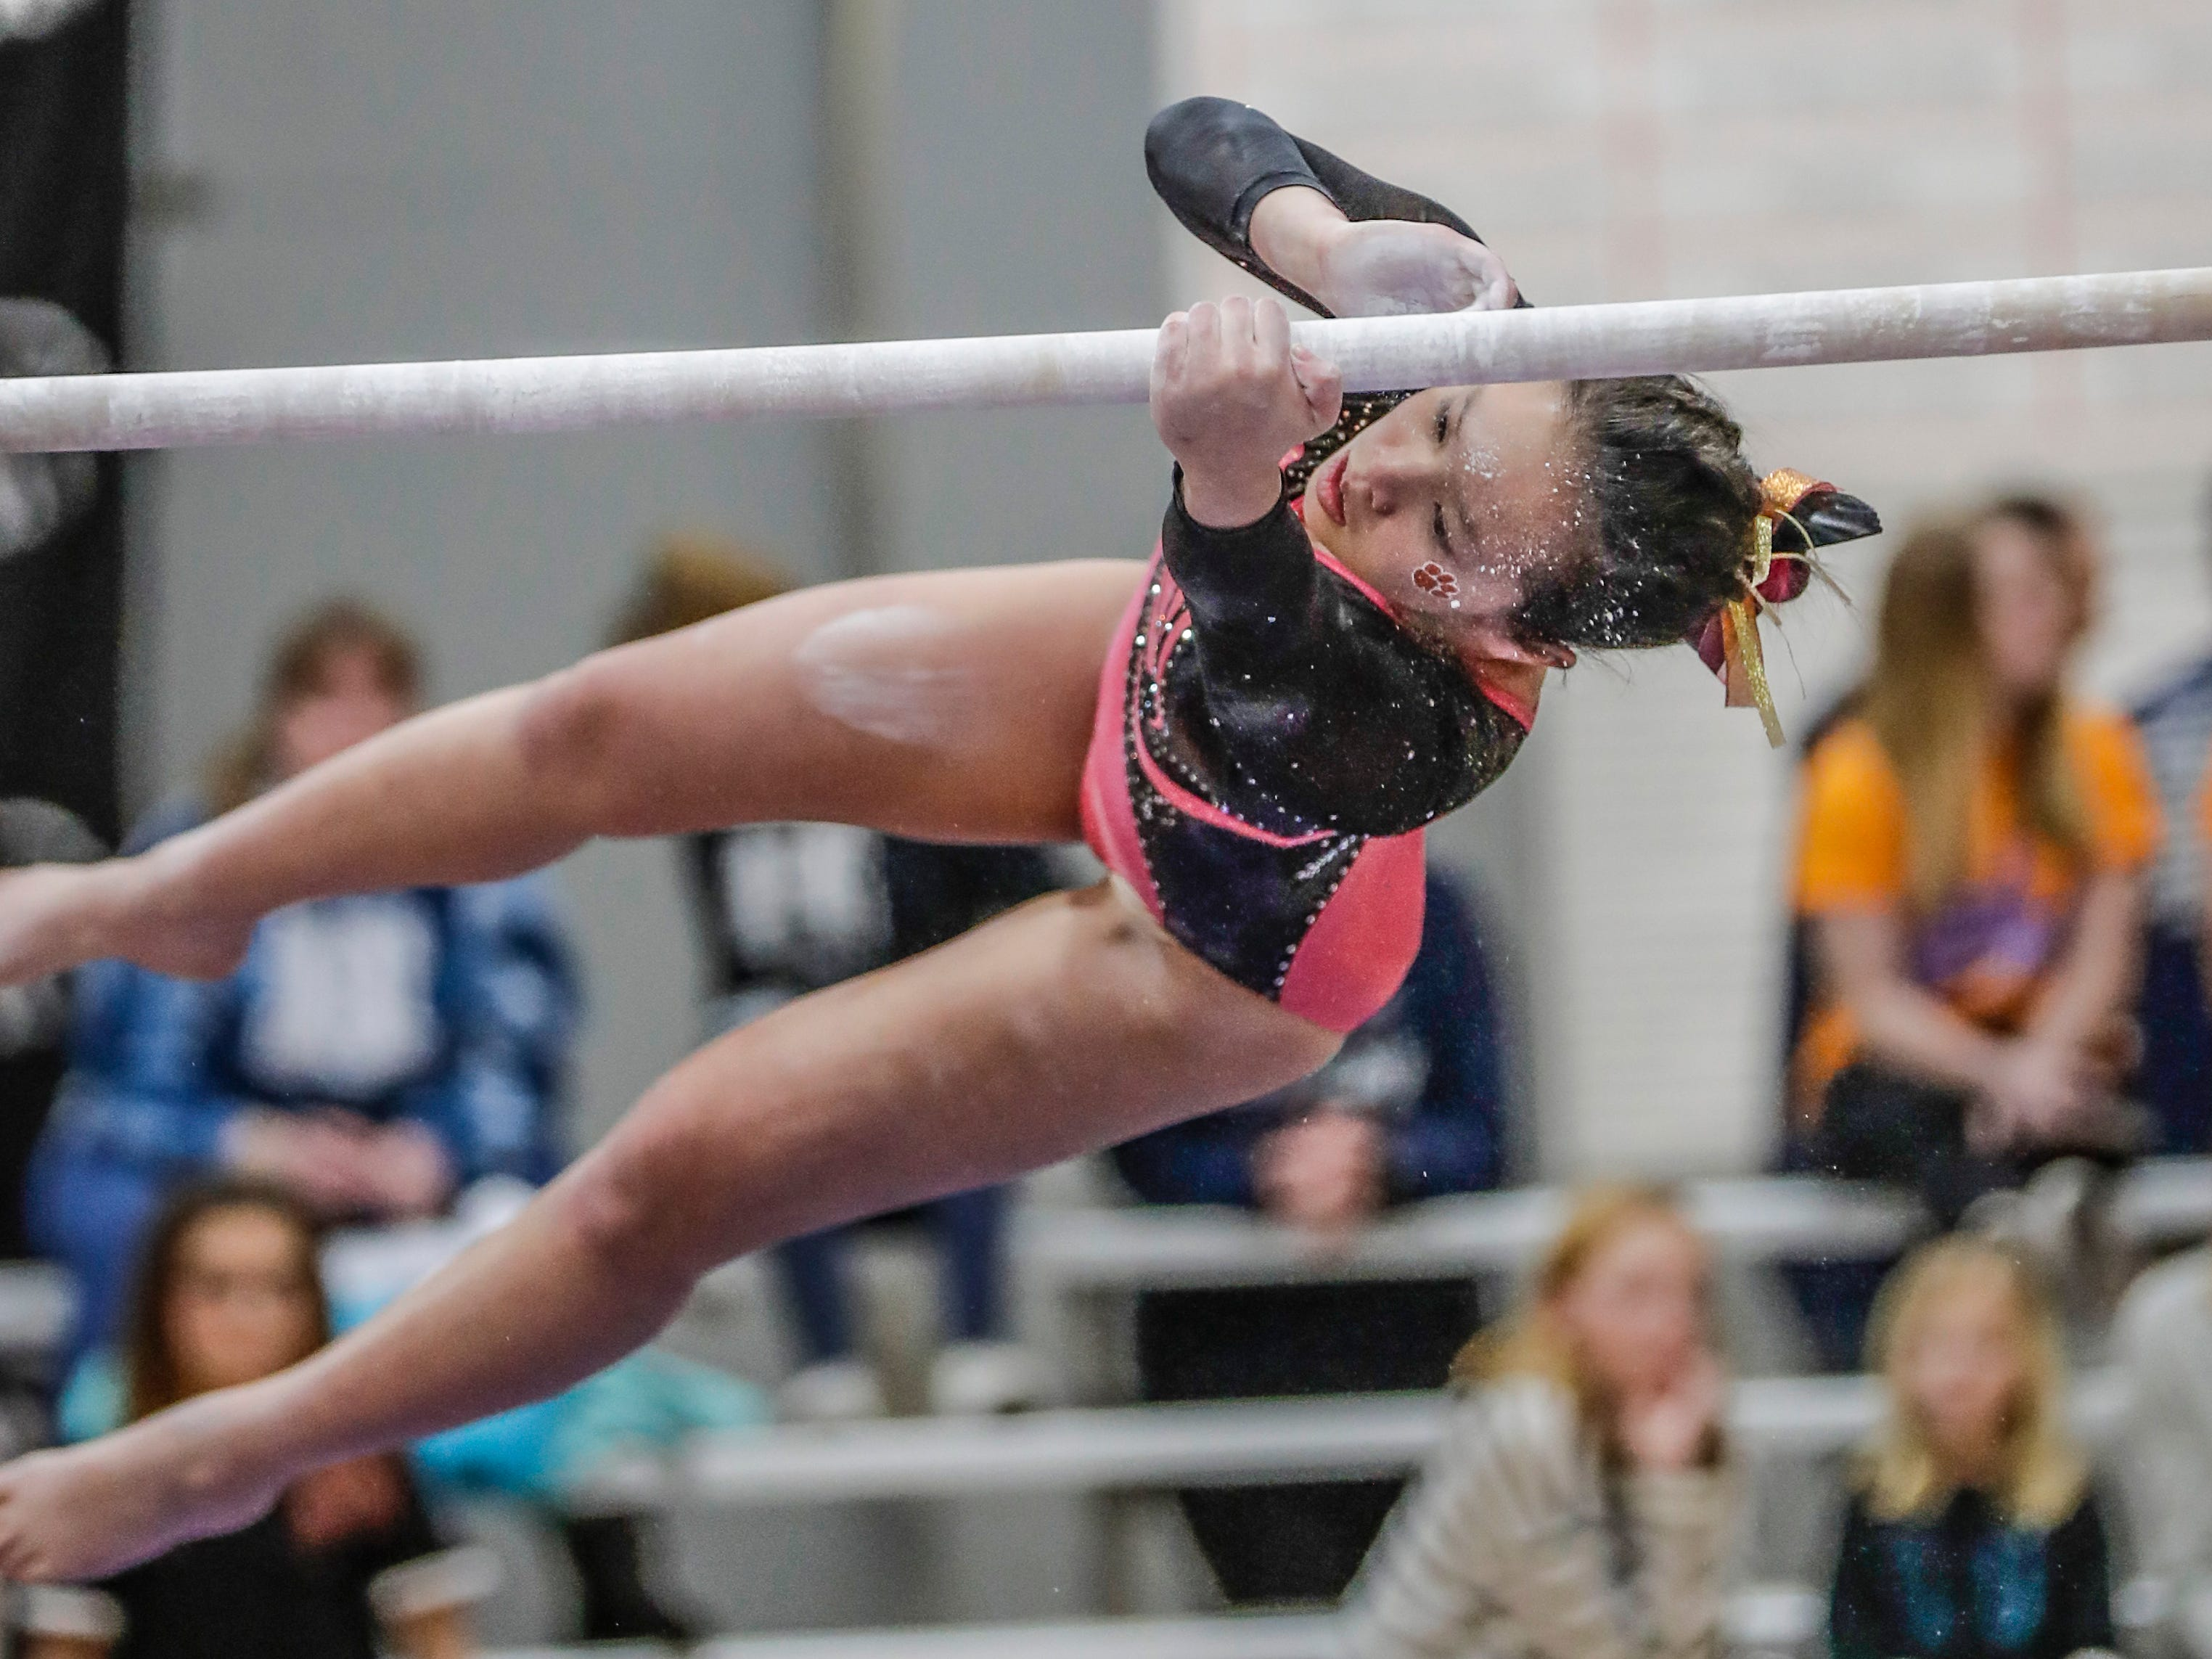 Marshfield's Hanna Merkel switches her hands on the uneven parallel bars during WIAA state gymnastics competition Friday, March 1, 2019, at Lincoln High School Field House in Wisconsin Rapids, Wis. T'xer Zhon Kha/USA TODAY NETWORK-Wisconsin